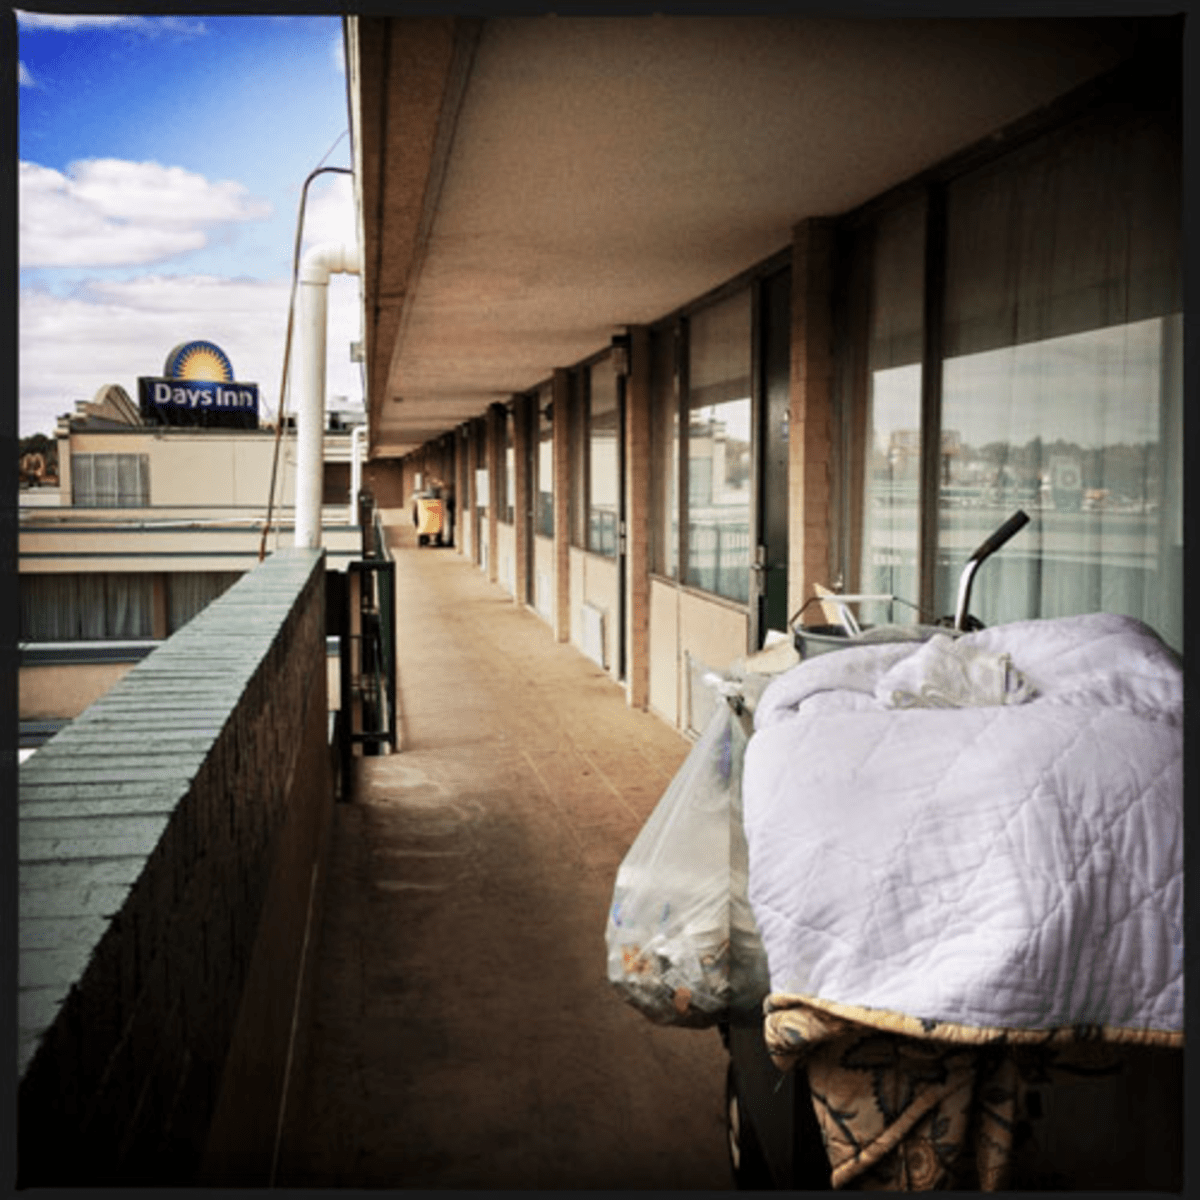 There are 251 homeless families being sheltered at the New York Avenue NE Days Inn and another motel.